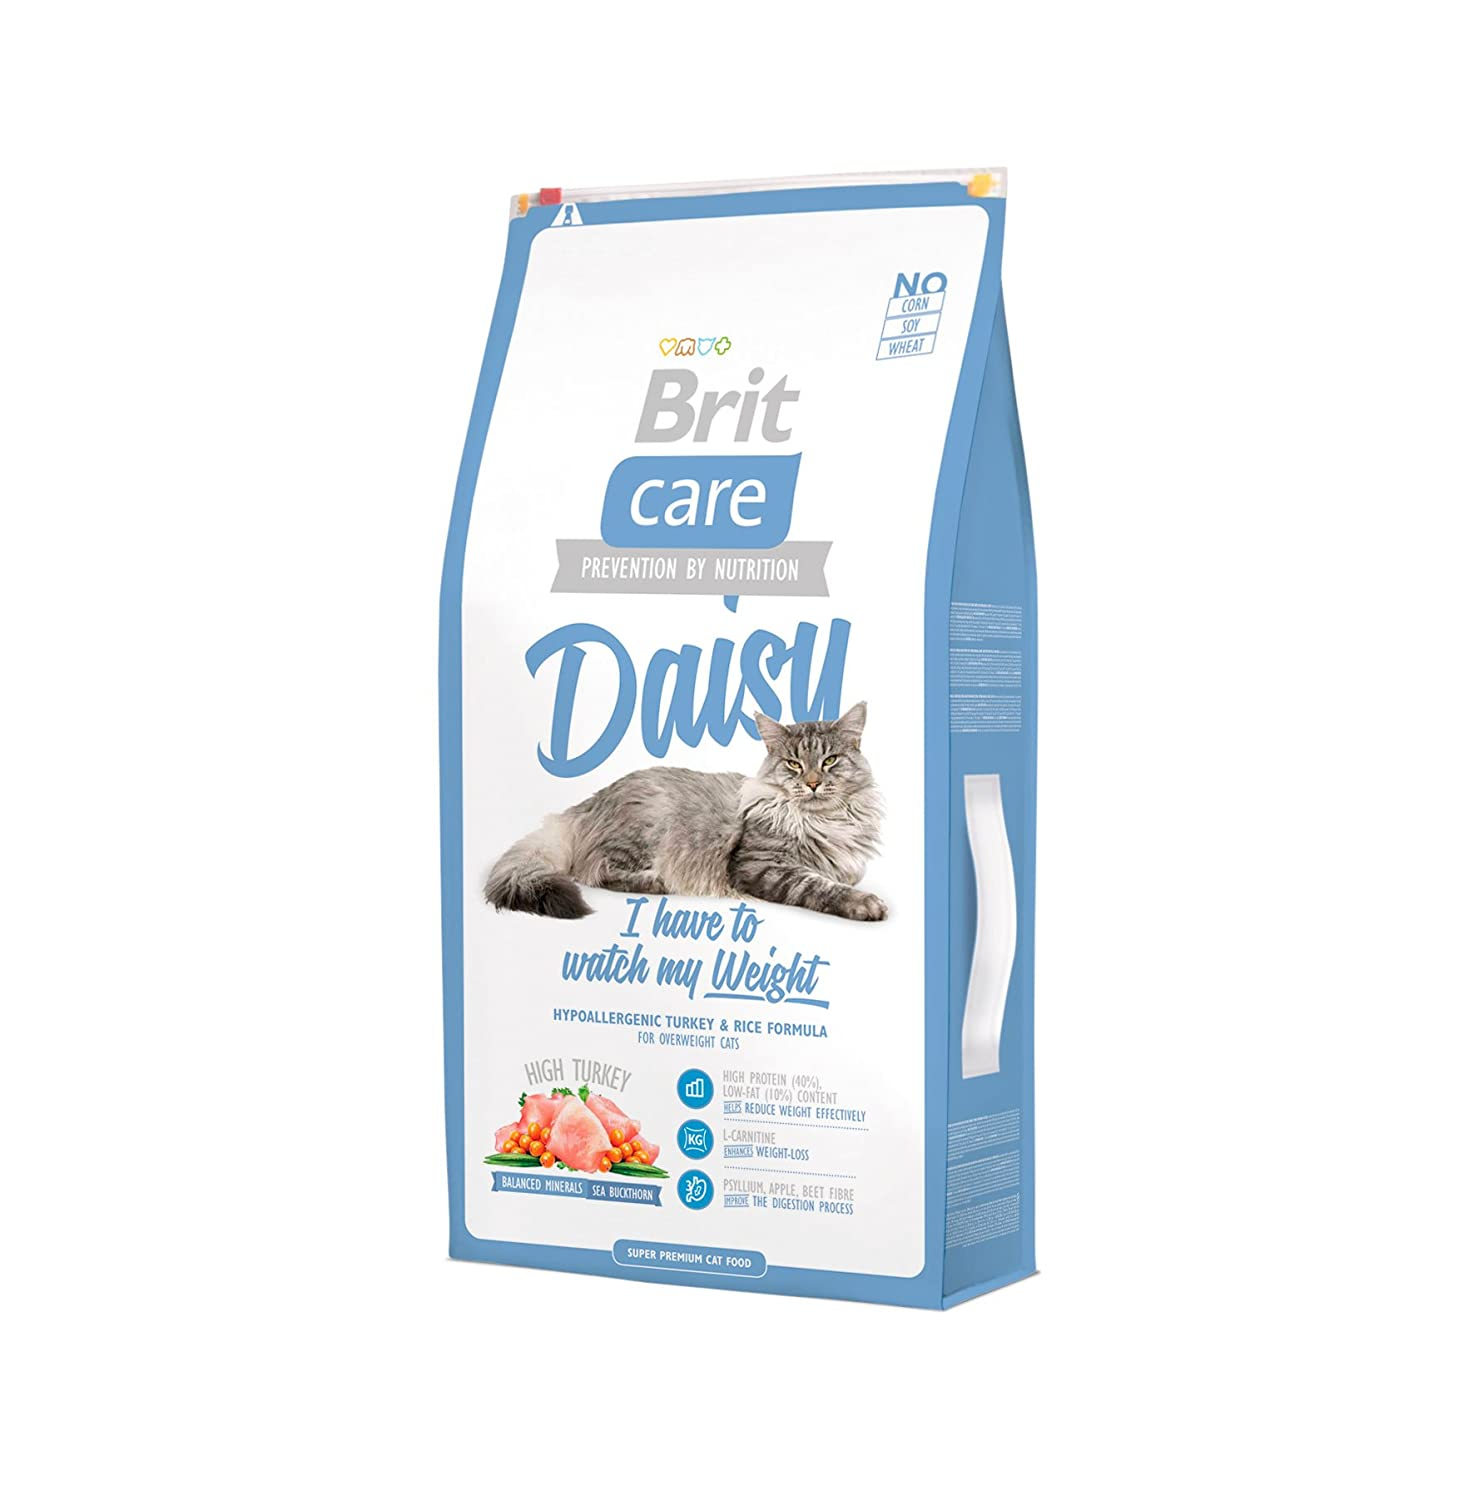 Brit Care Cat Food, Daisy, I Have To Watch My Weight, 7 kg